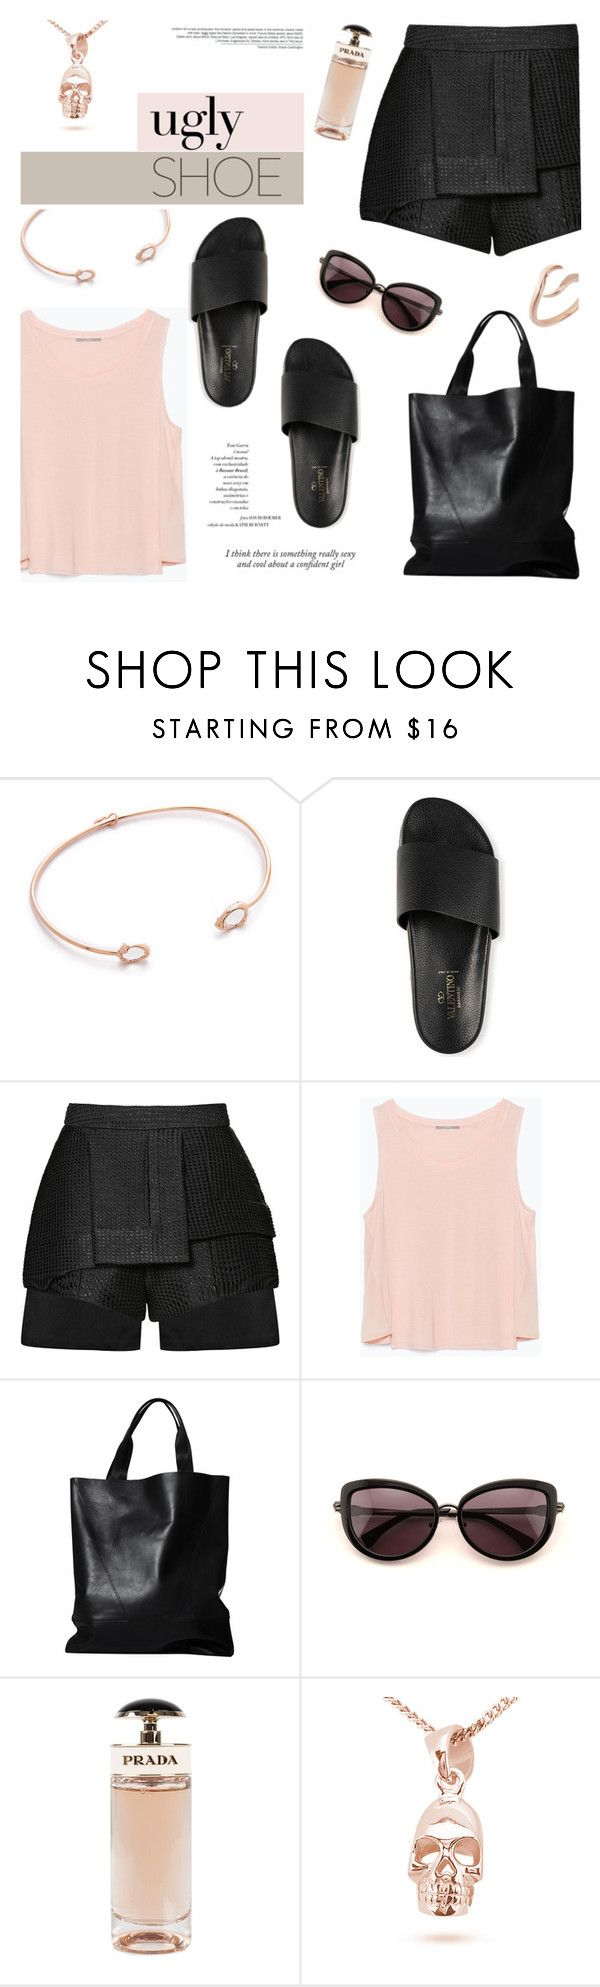 """Rock the Pool Slide Sandals"" by mahora ❤ liked on Polyvore featuring Tai, E L L E R Y, Zara, London Edit, Wildfox, Prada, Merve Baal, women's clothing, women and female"